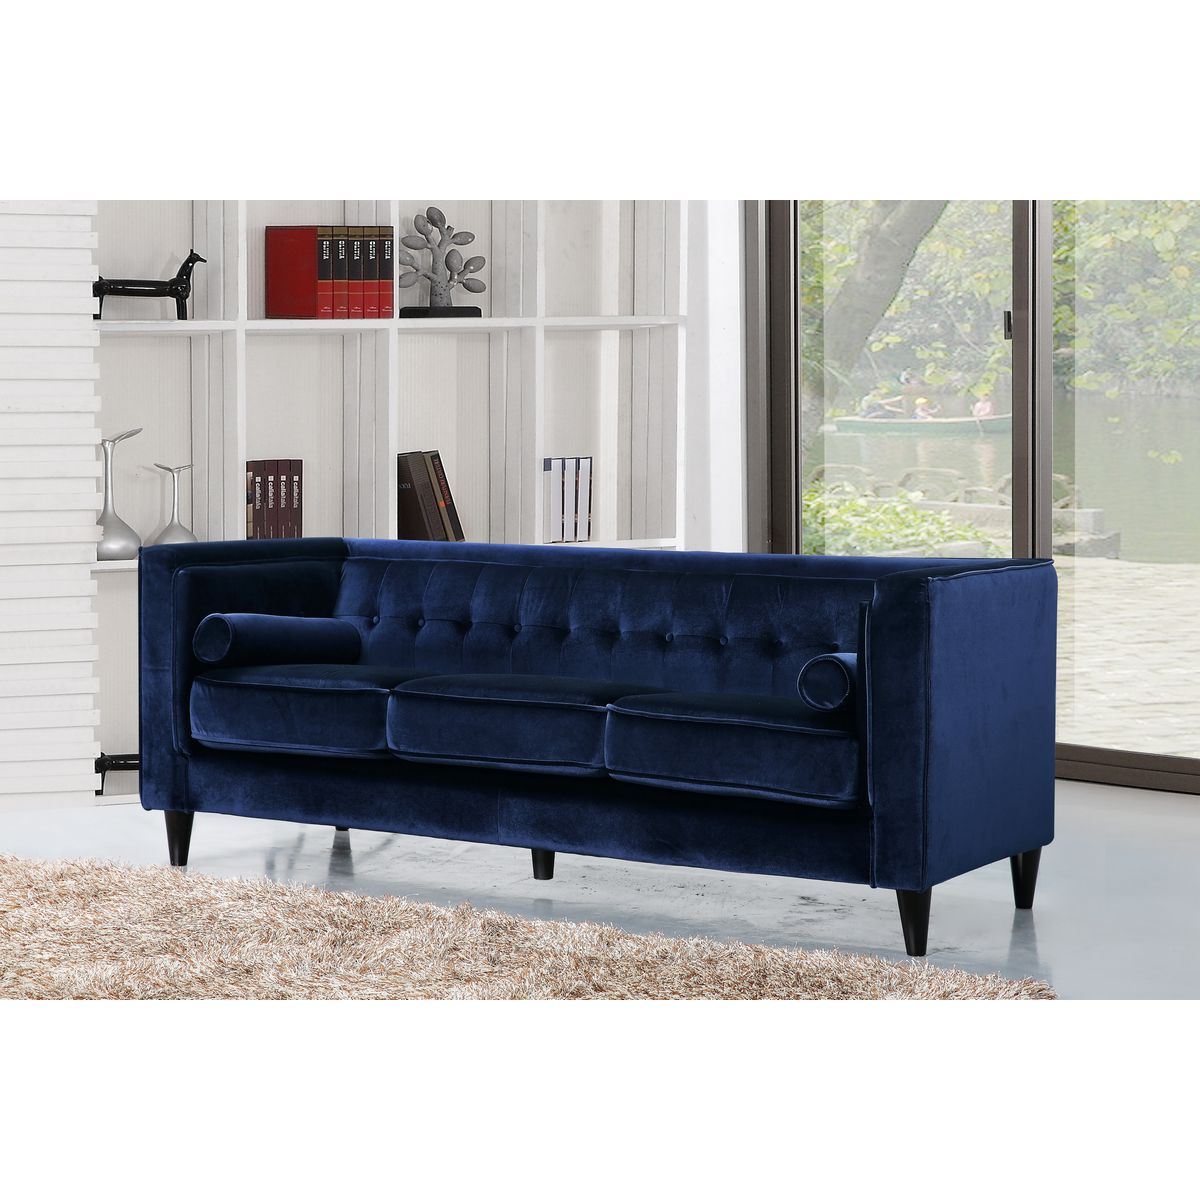 Phenomenal Taylor Navy Velvet Sofa W Tufted Back Bolster Pillows By Meridian Furniture Ocoug Best Dining Table And Chair Ideas Images Ocougorg